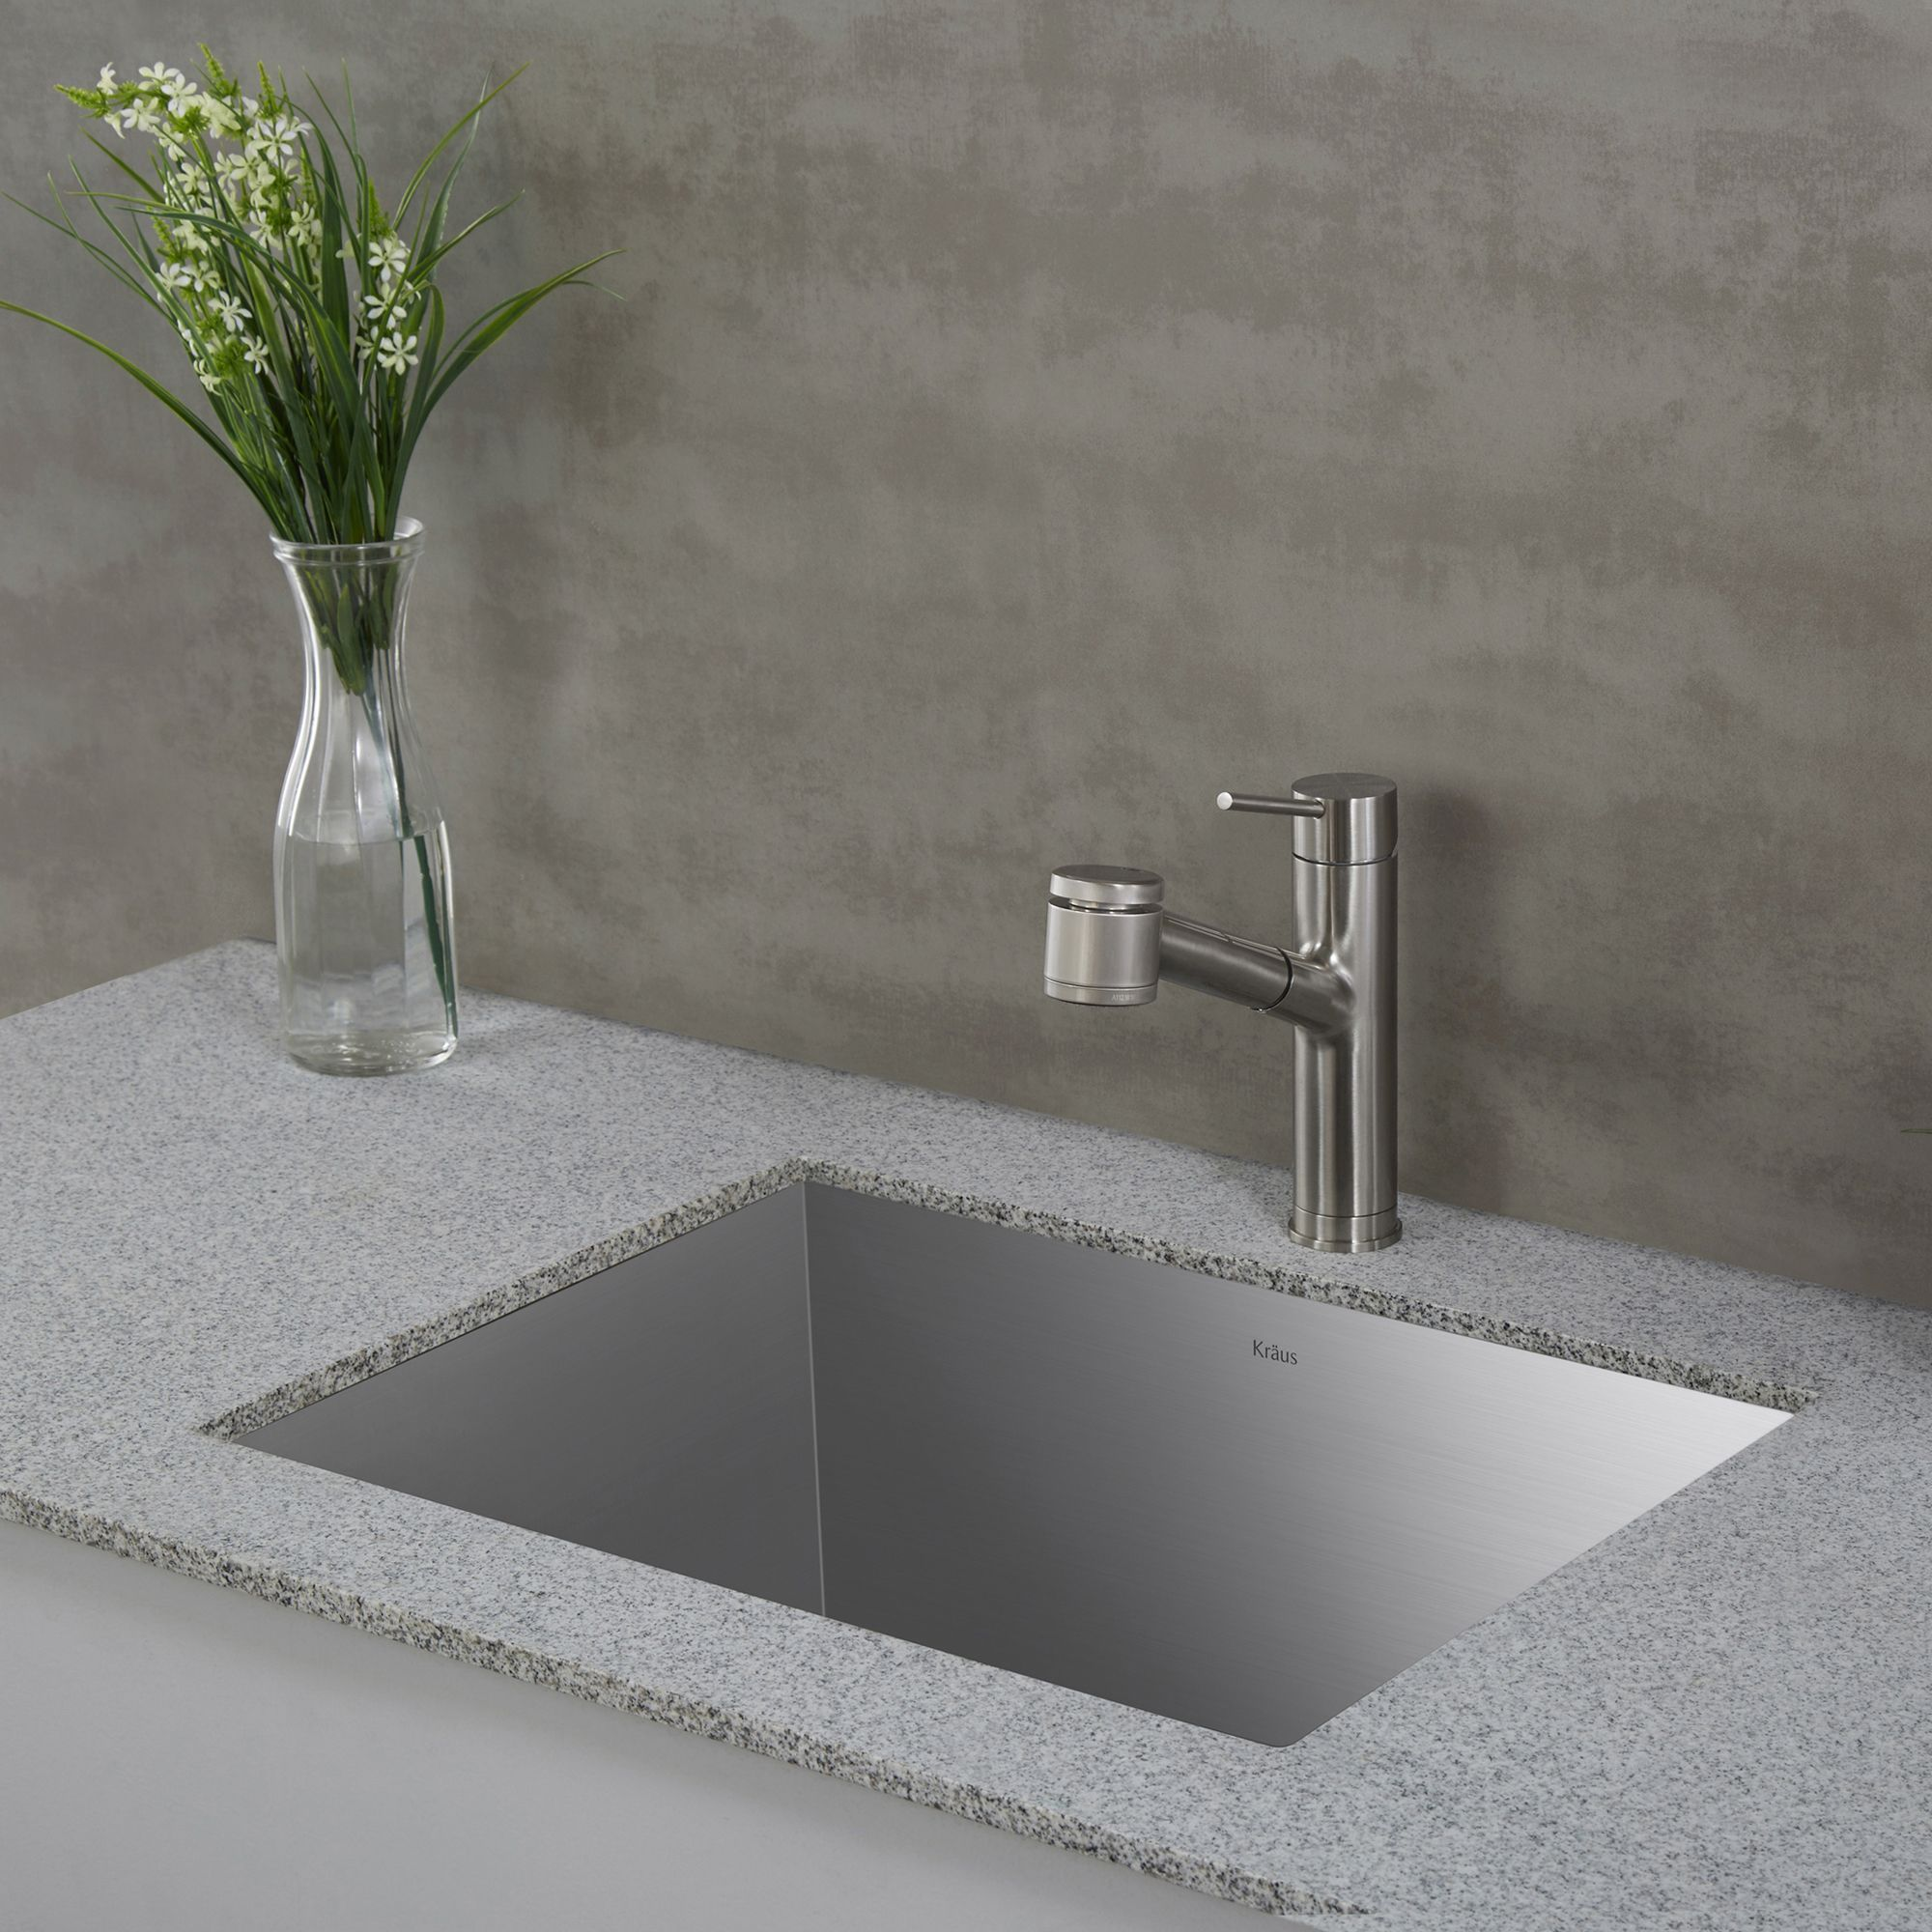 The Pax Zero Radius 24 Inch Utility Sink Has A Clean Geometric Design With Corners For Modern Look Handcrafted From Premium T 304 Stainless